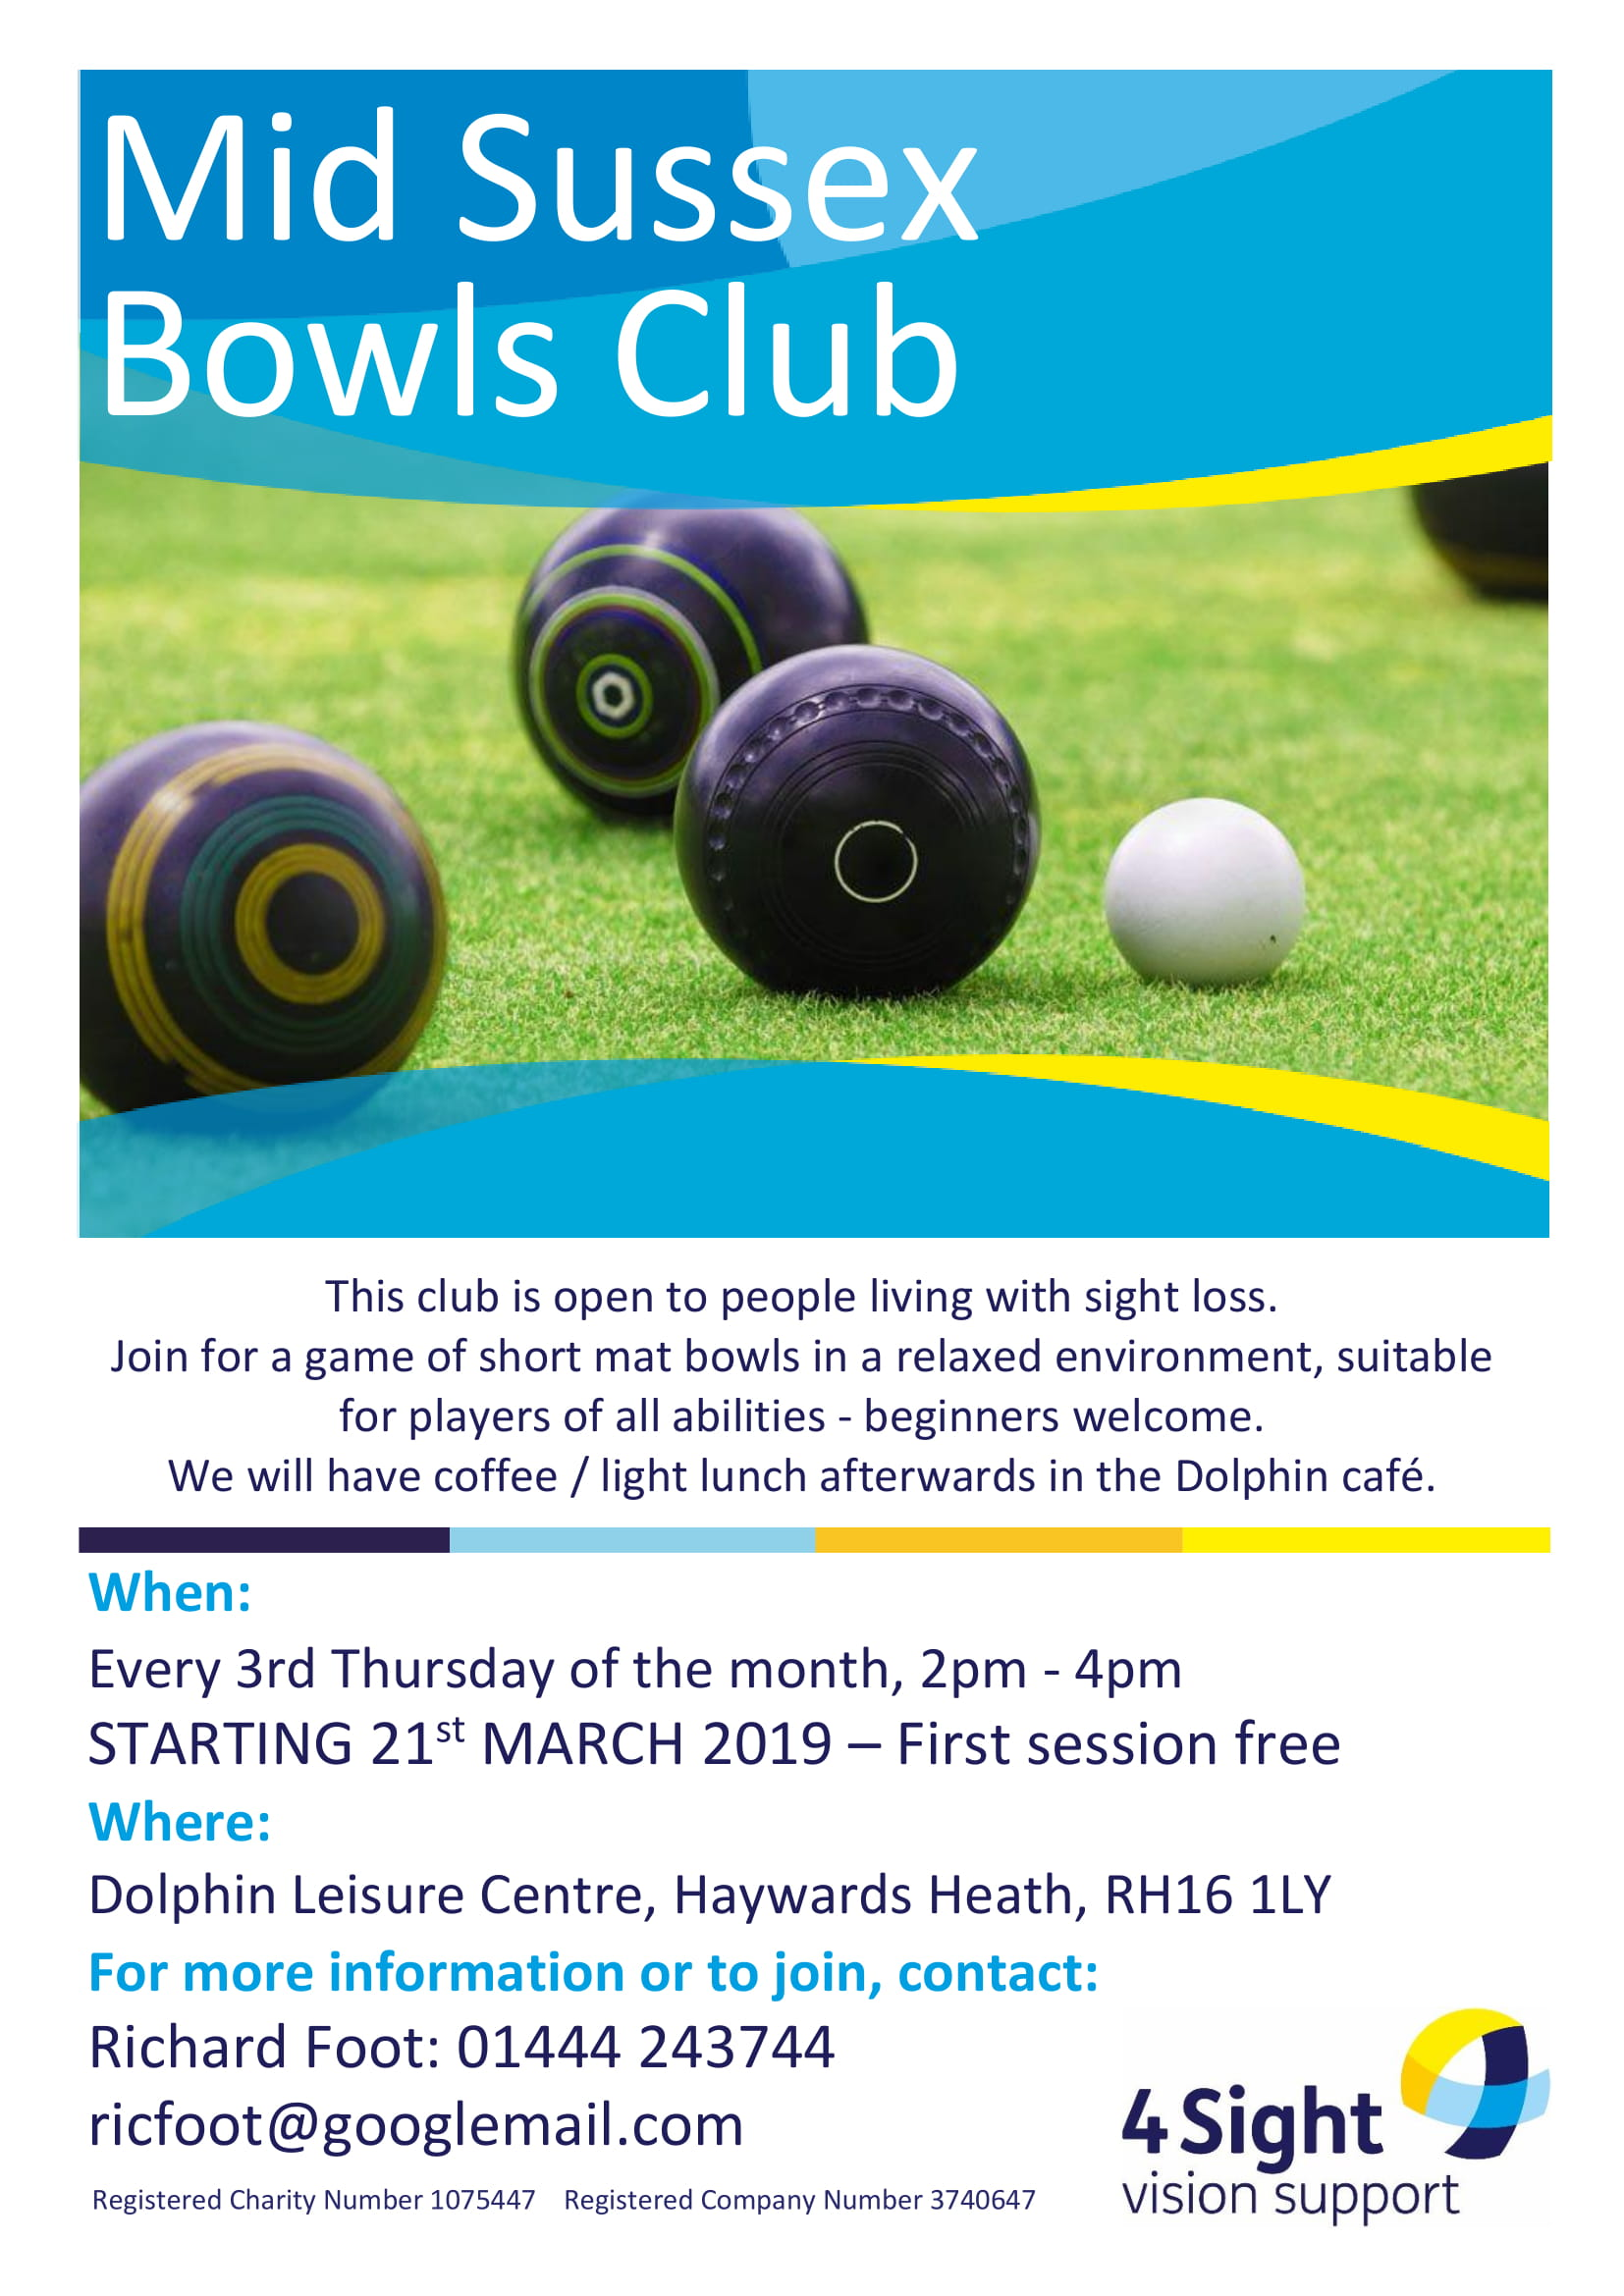 Mid Sussex Bowls Club-1